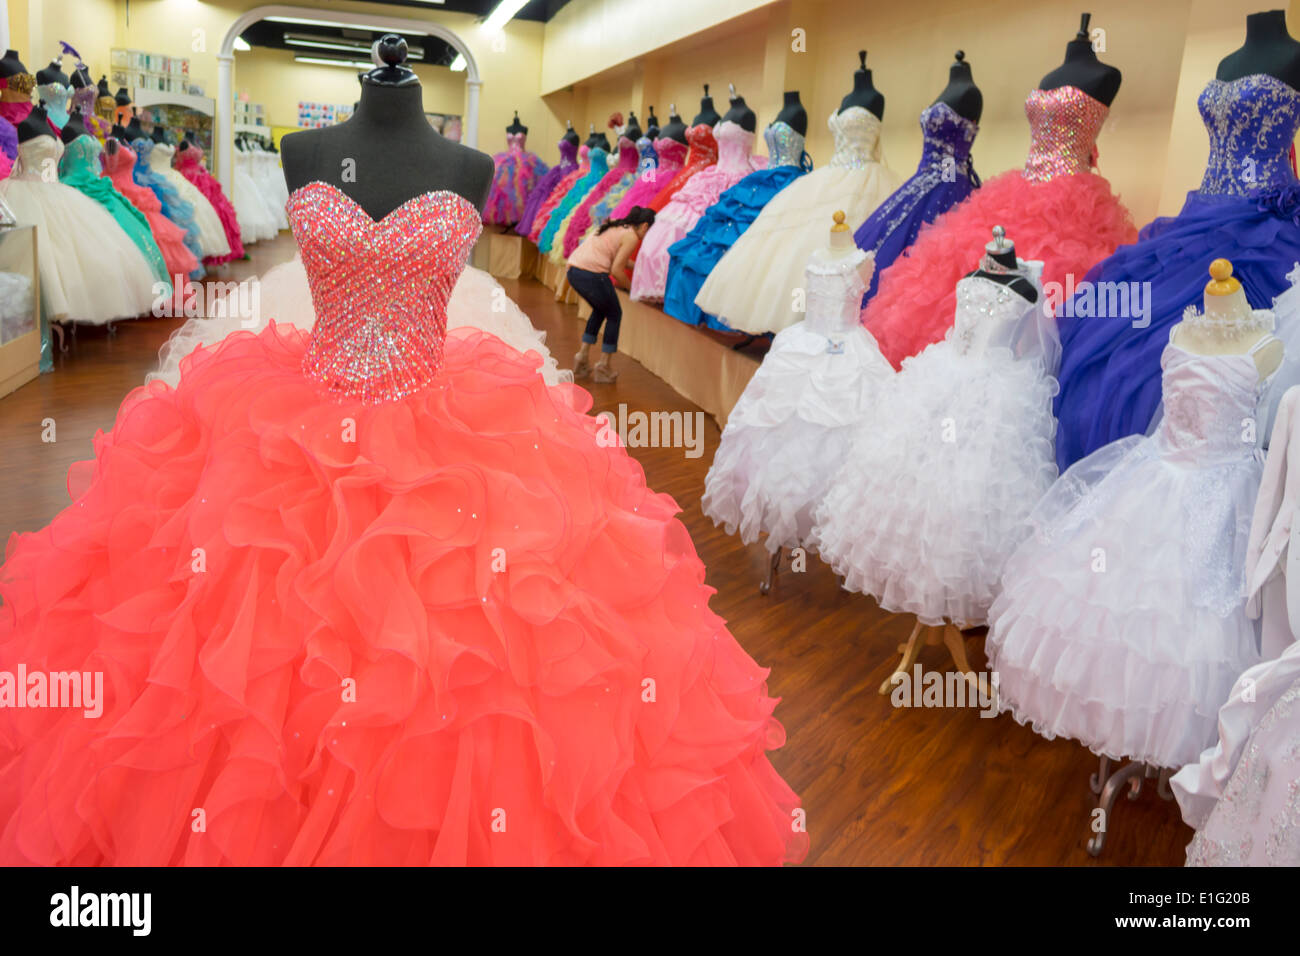 Quinceanera Dress Shop, Los Angeles, California Stock Photo ...